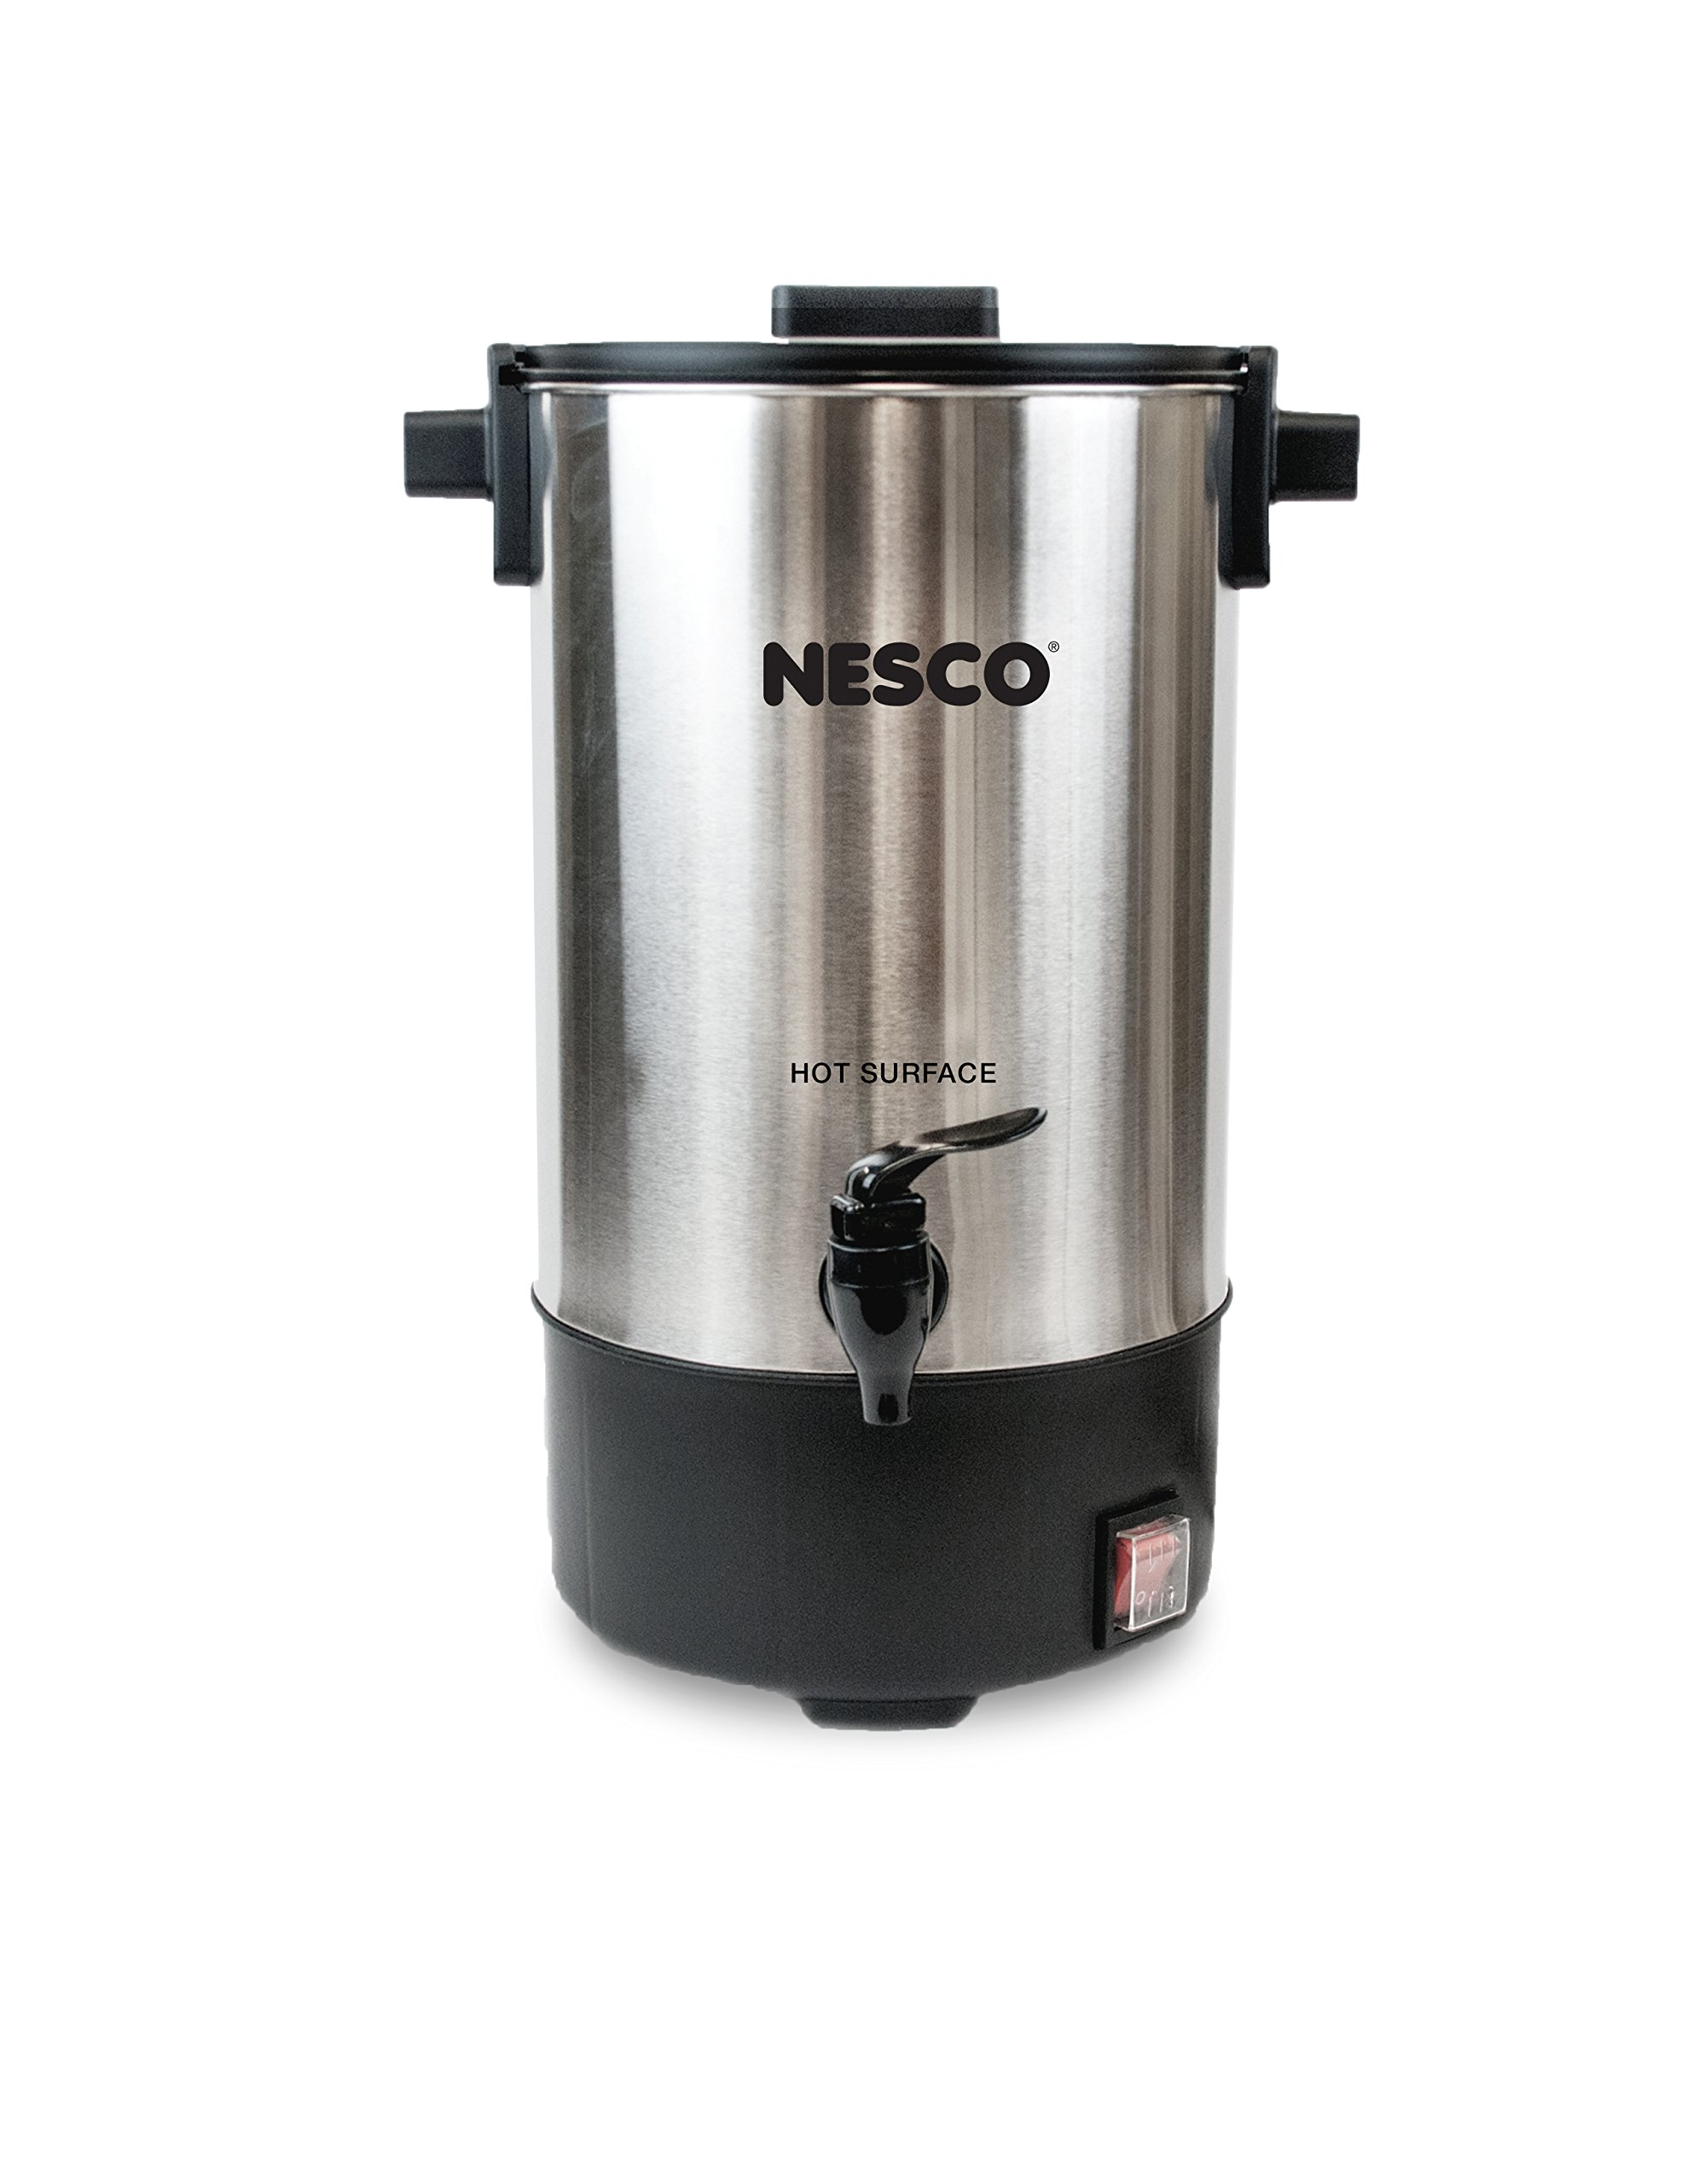 Nesco CU-25 Professional Coffee Urn, 25 Cup, Stainless Steel